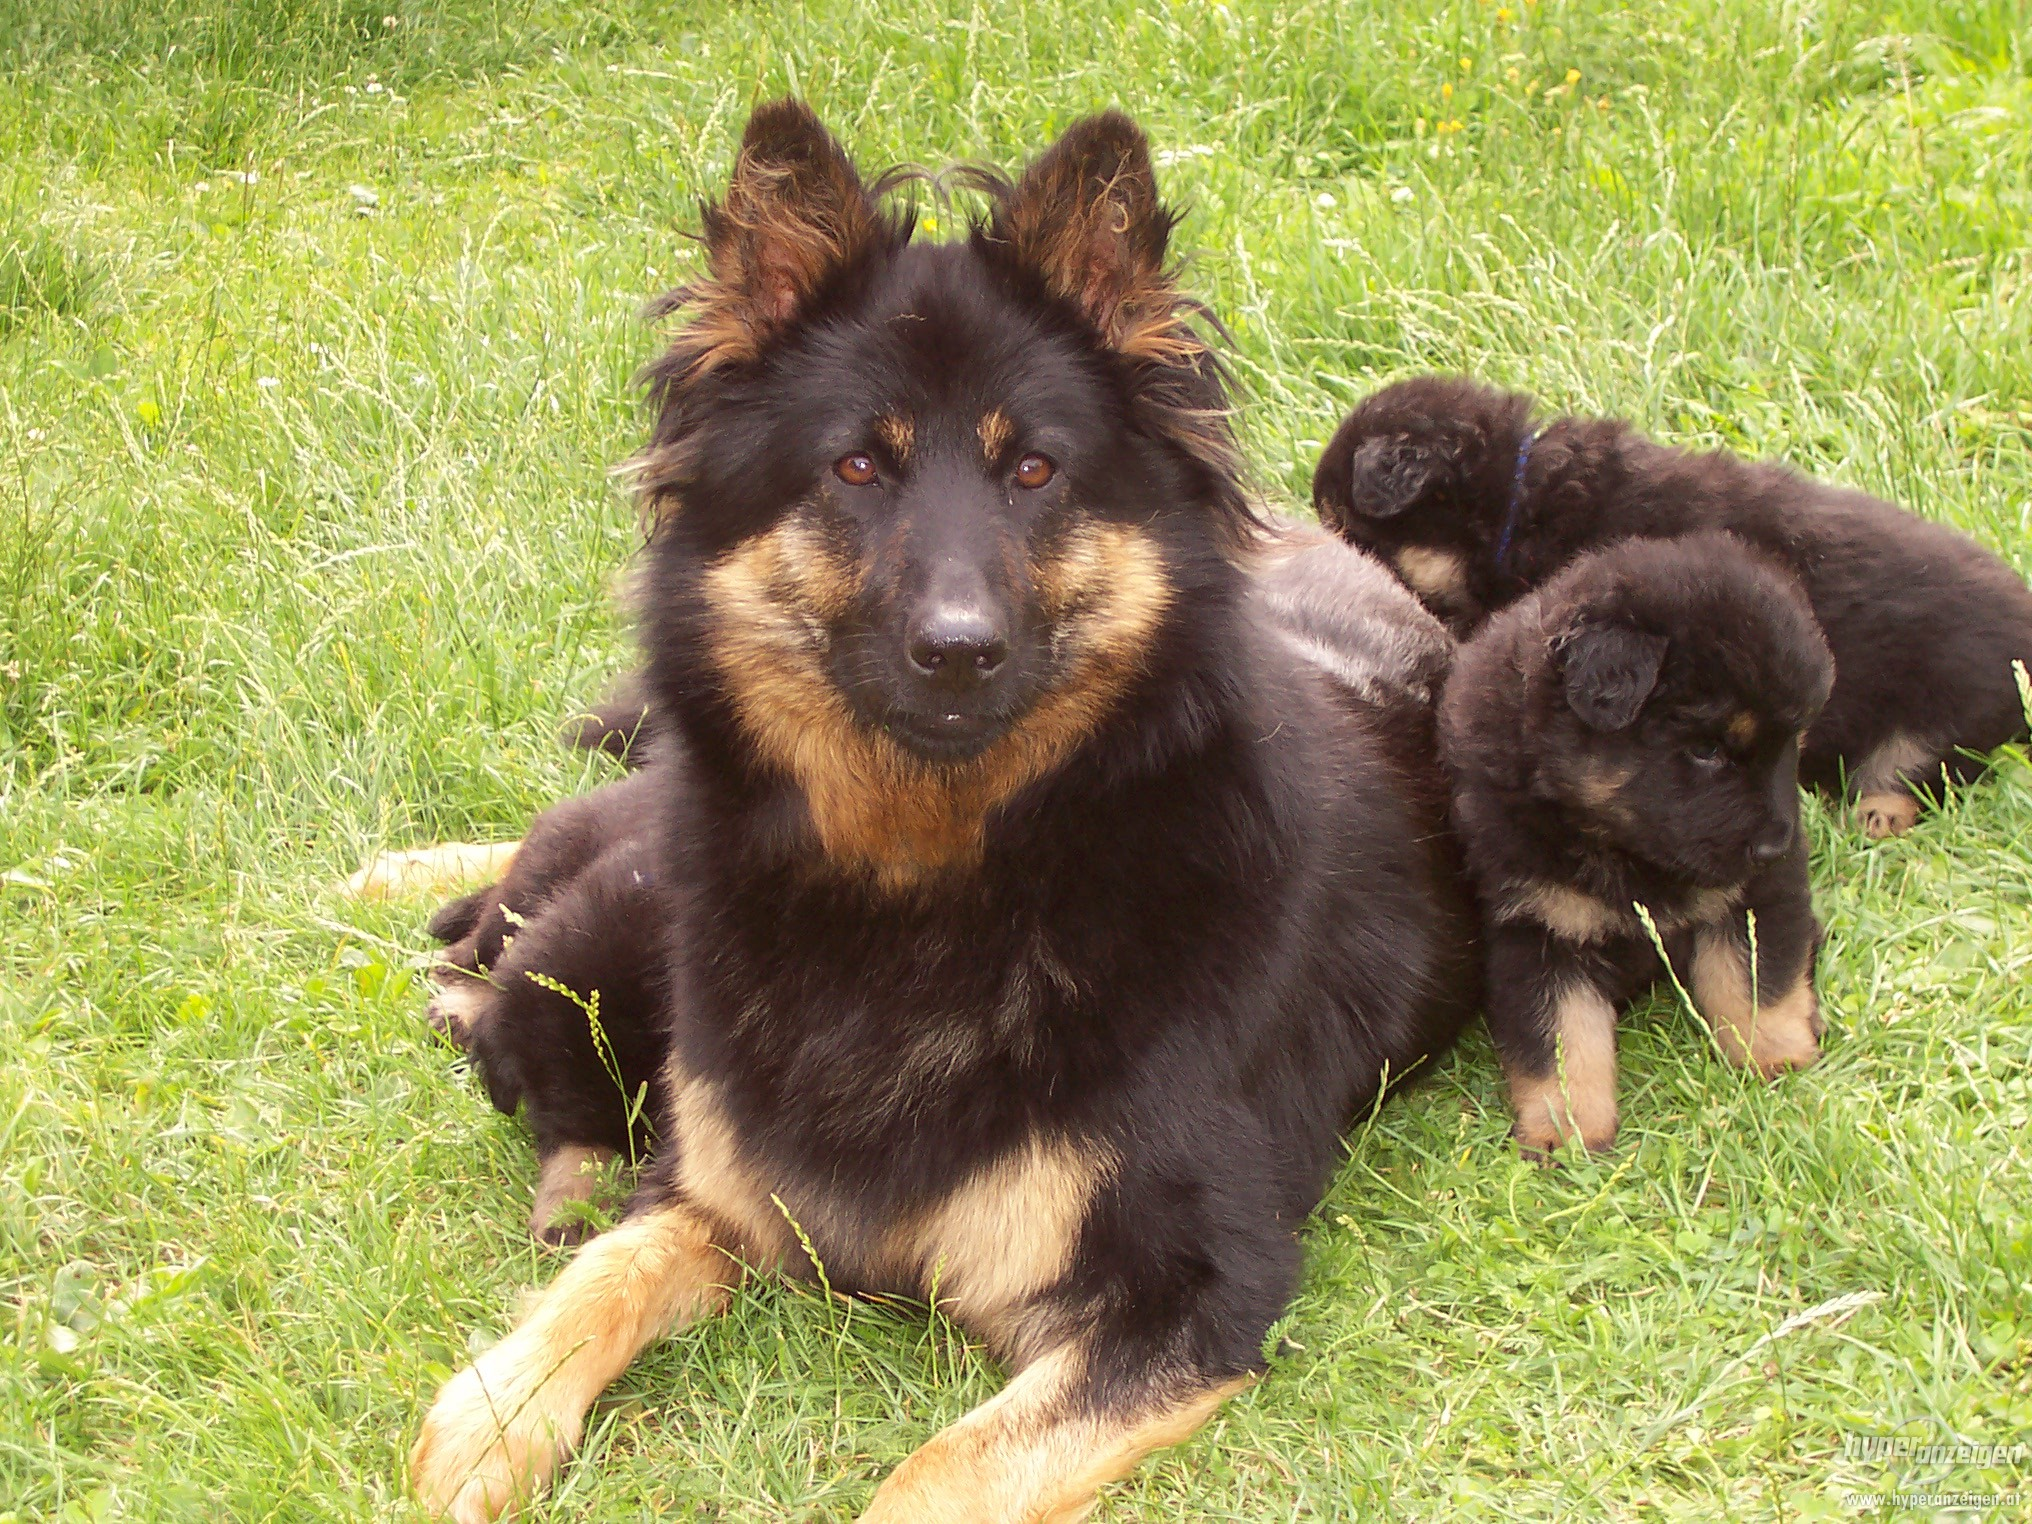 Bohemian Shepherd Puppies: Bohemian Bohemian Dog And Puppies Breed